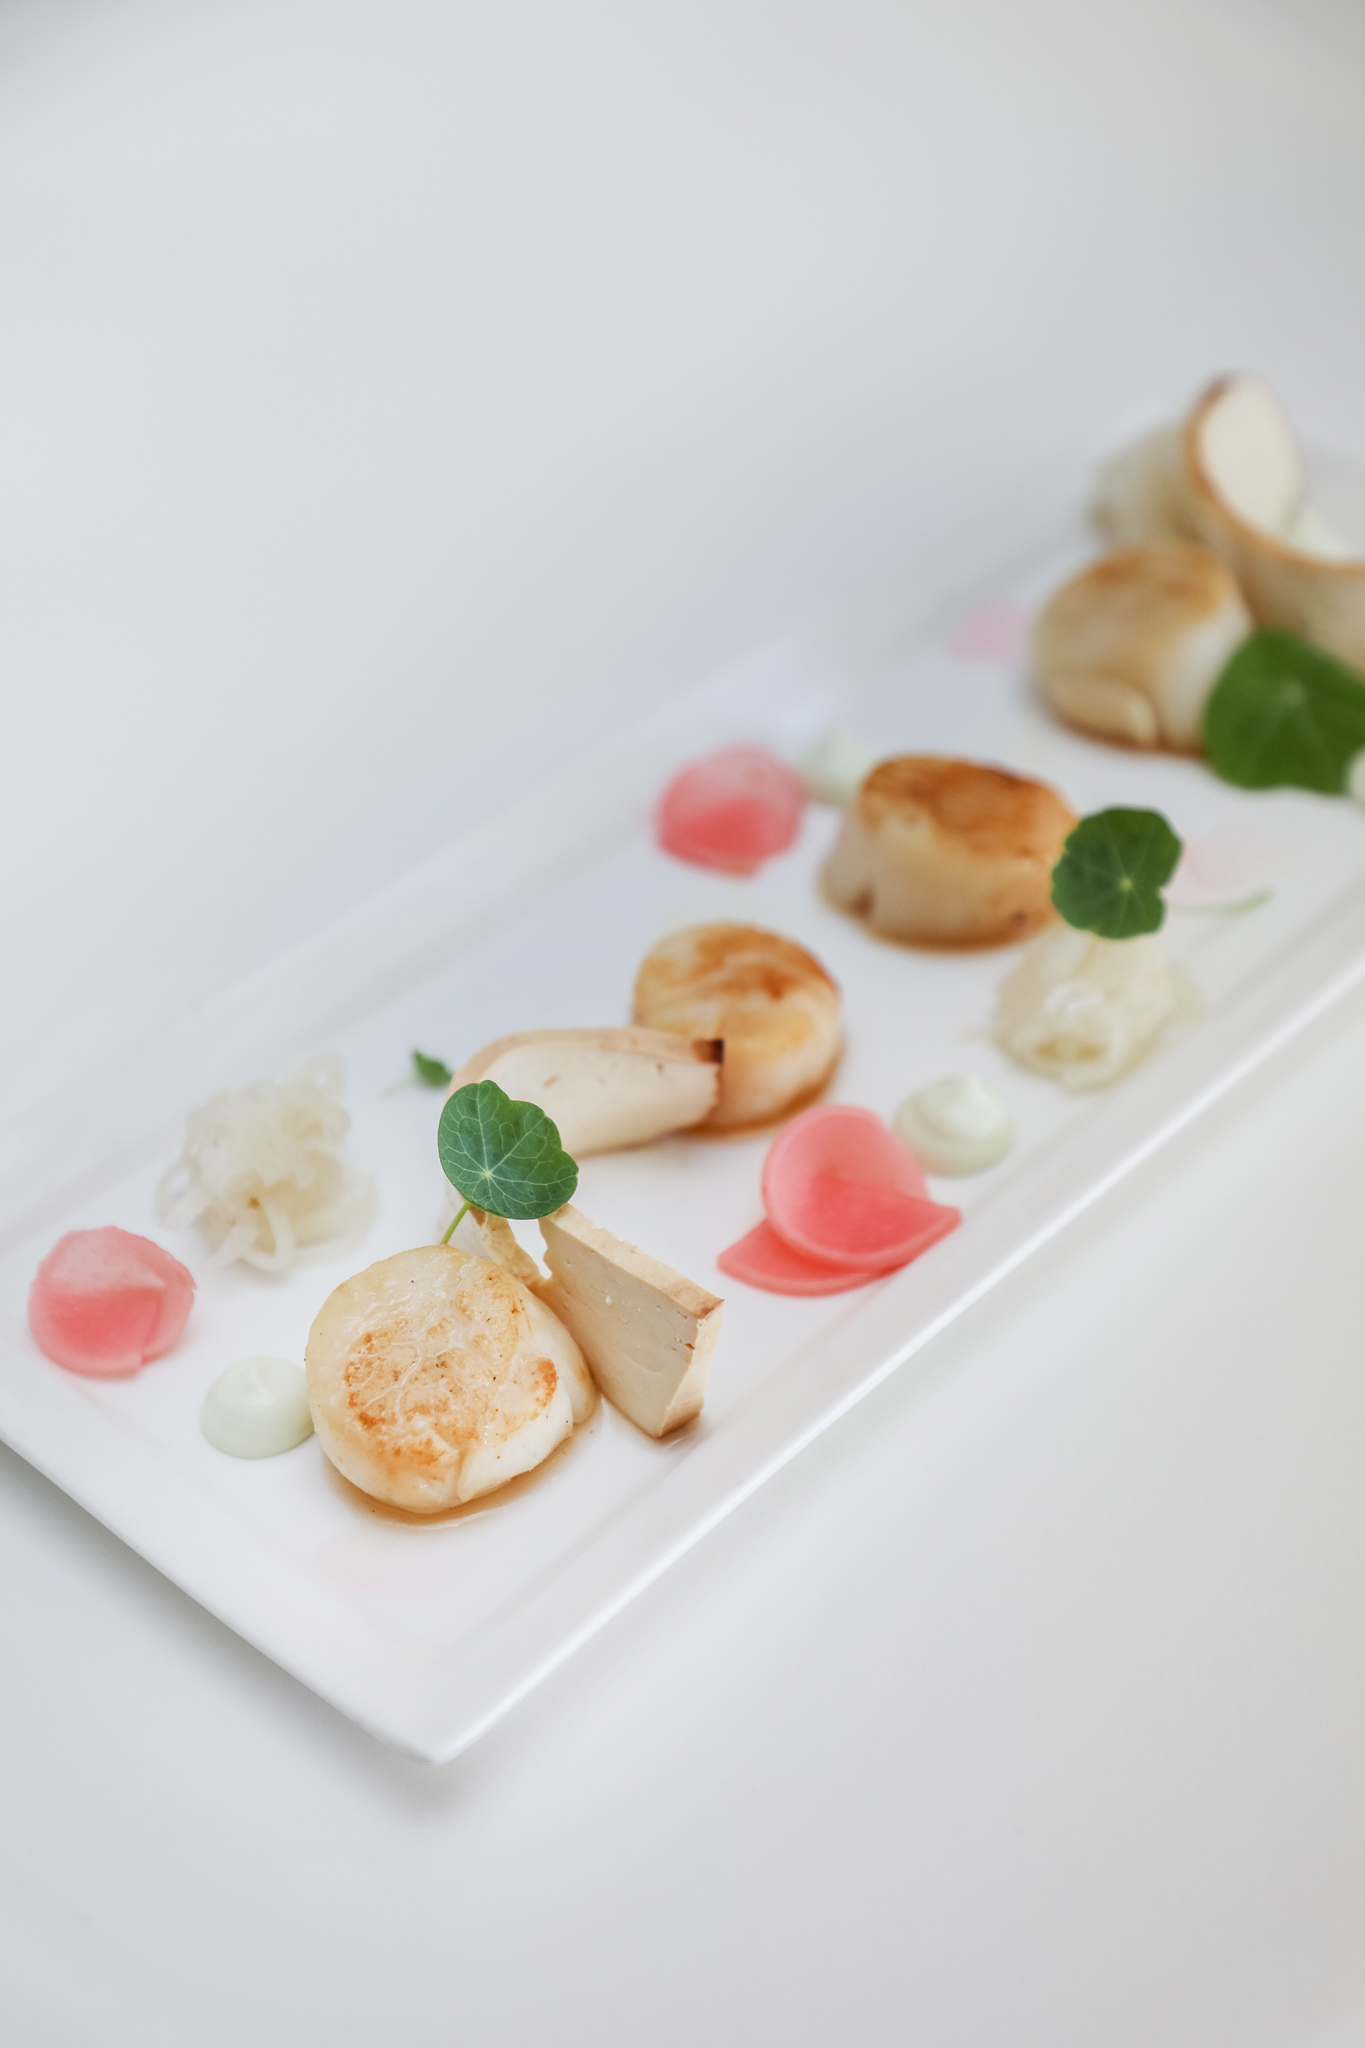 A well presented meal of scallops.